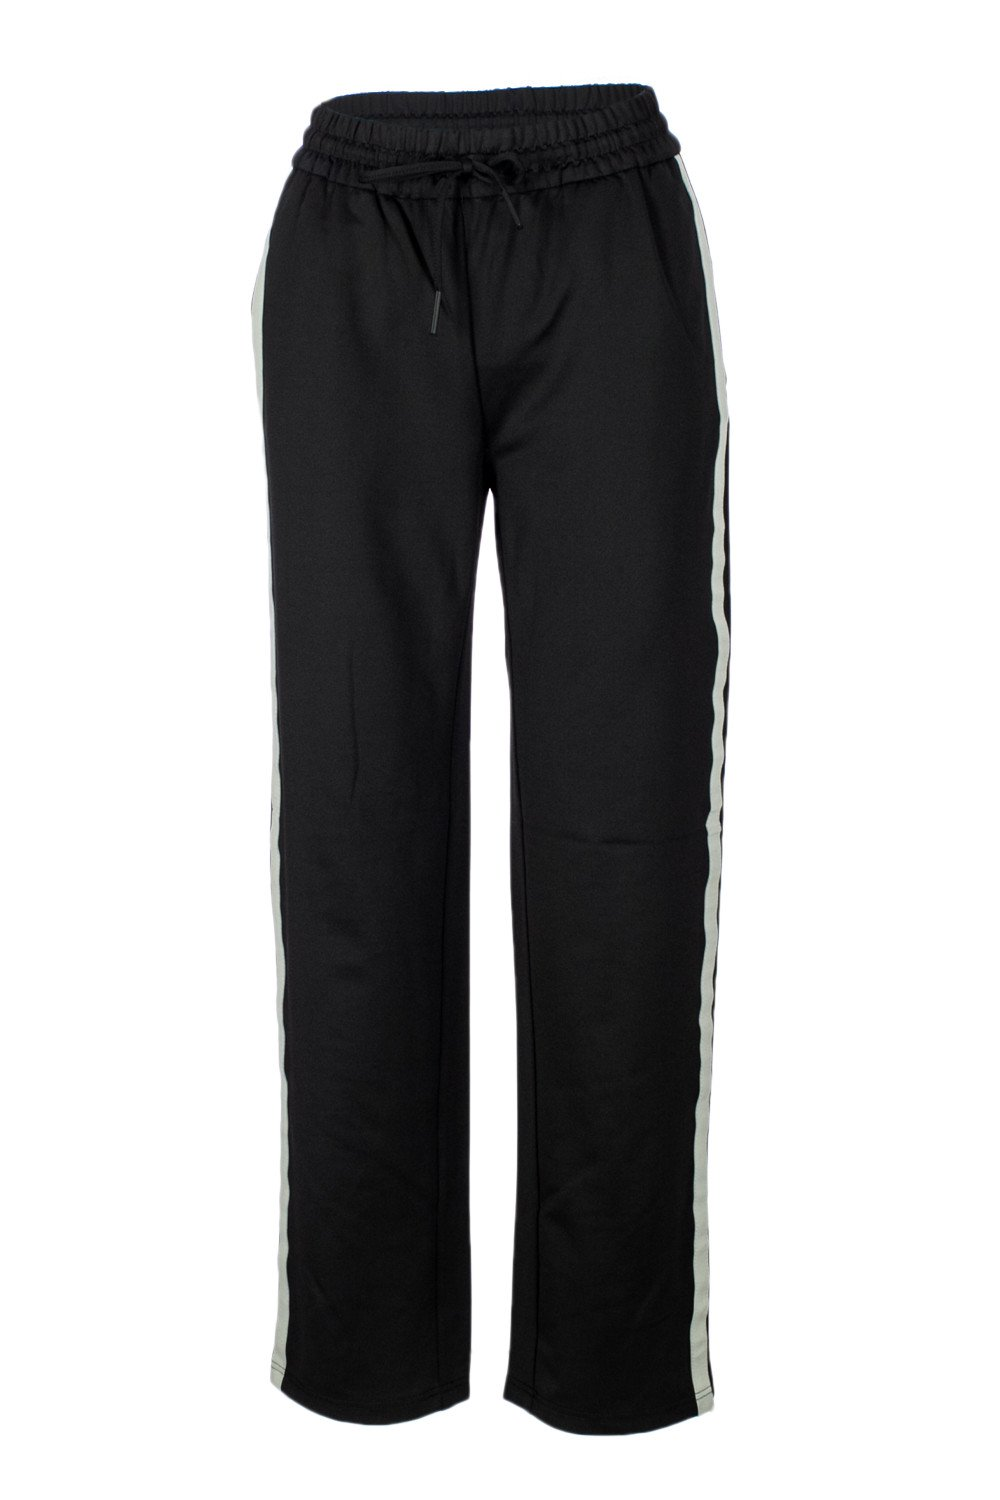 Only  Women Trousers - SisBrothers